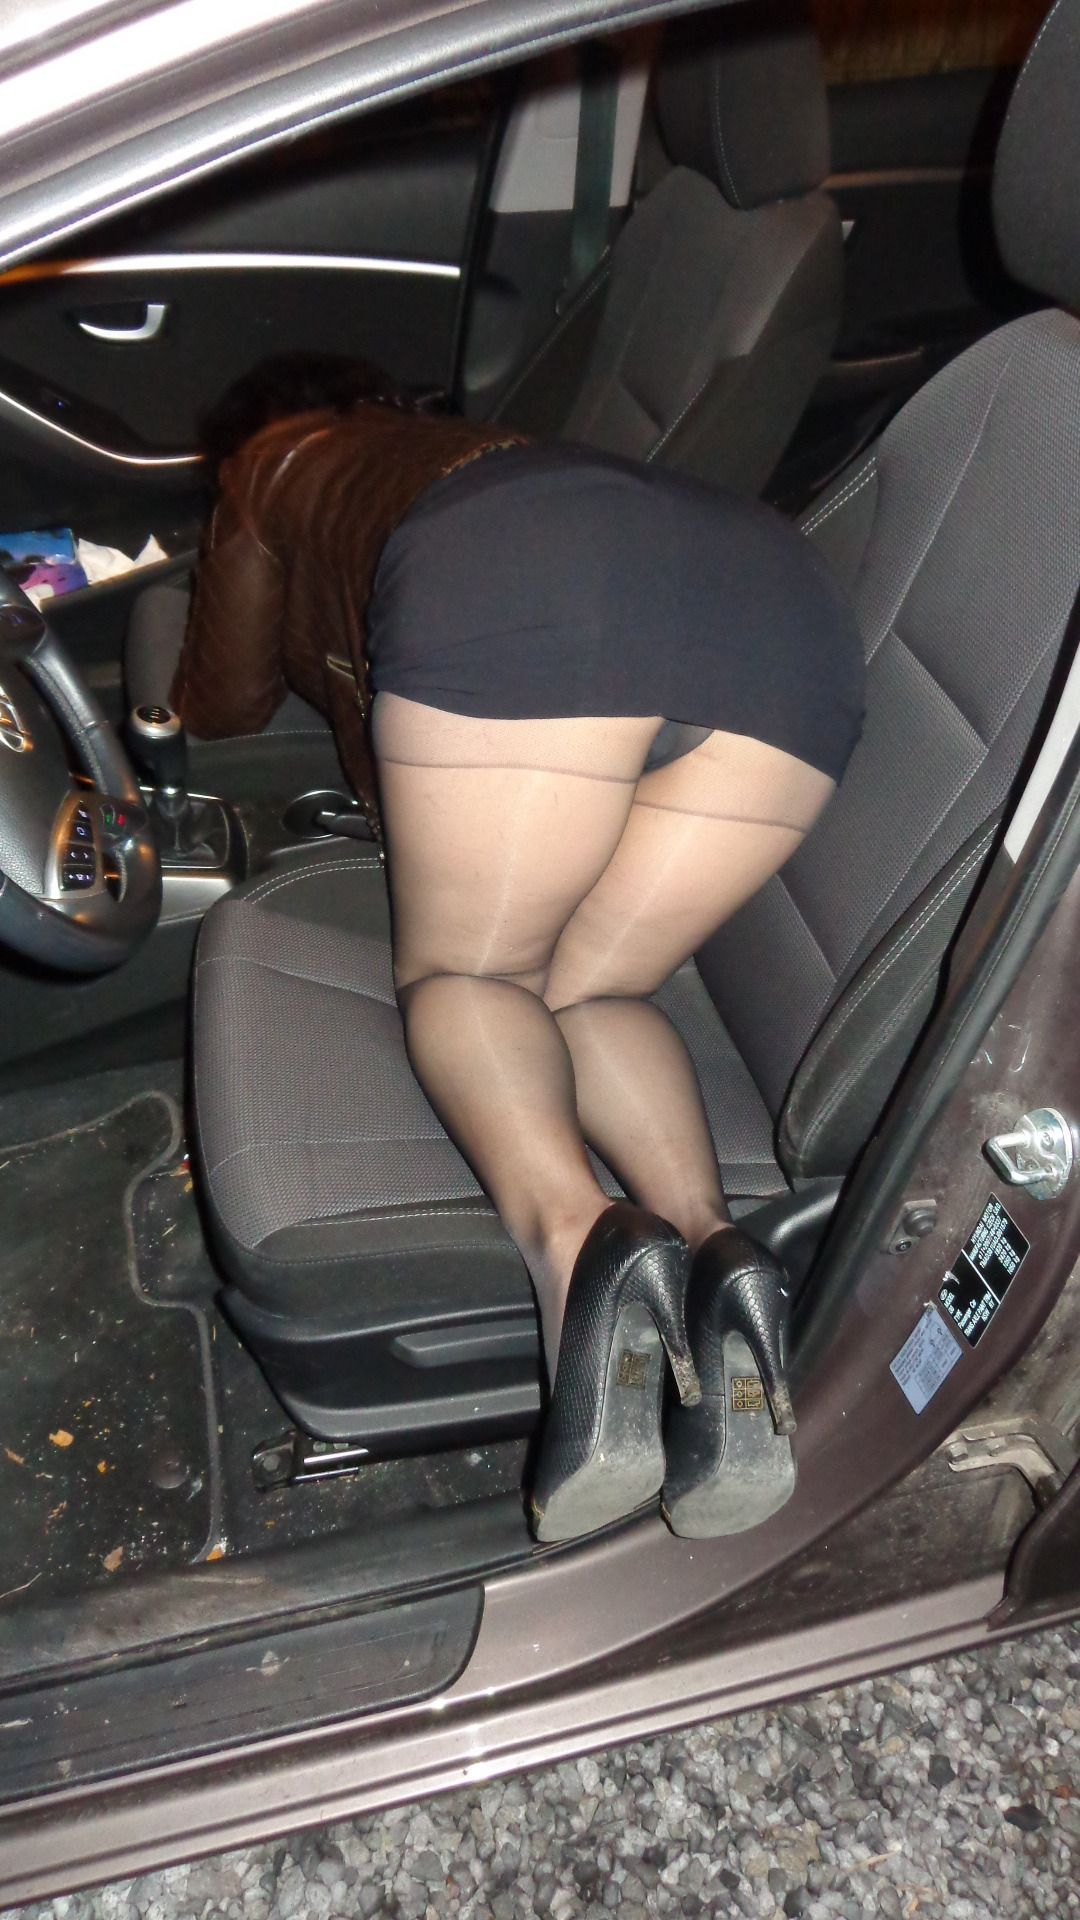 Pin By Angus Dance On Upskirts Pinterest Dogging Wife